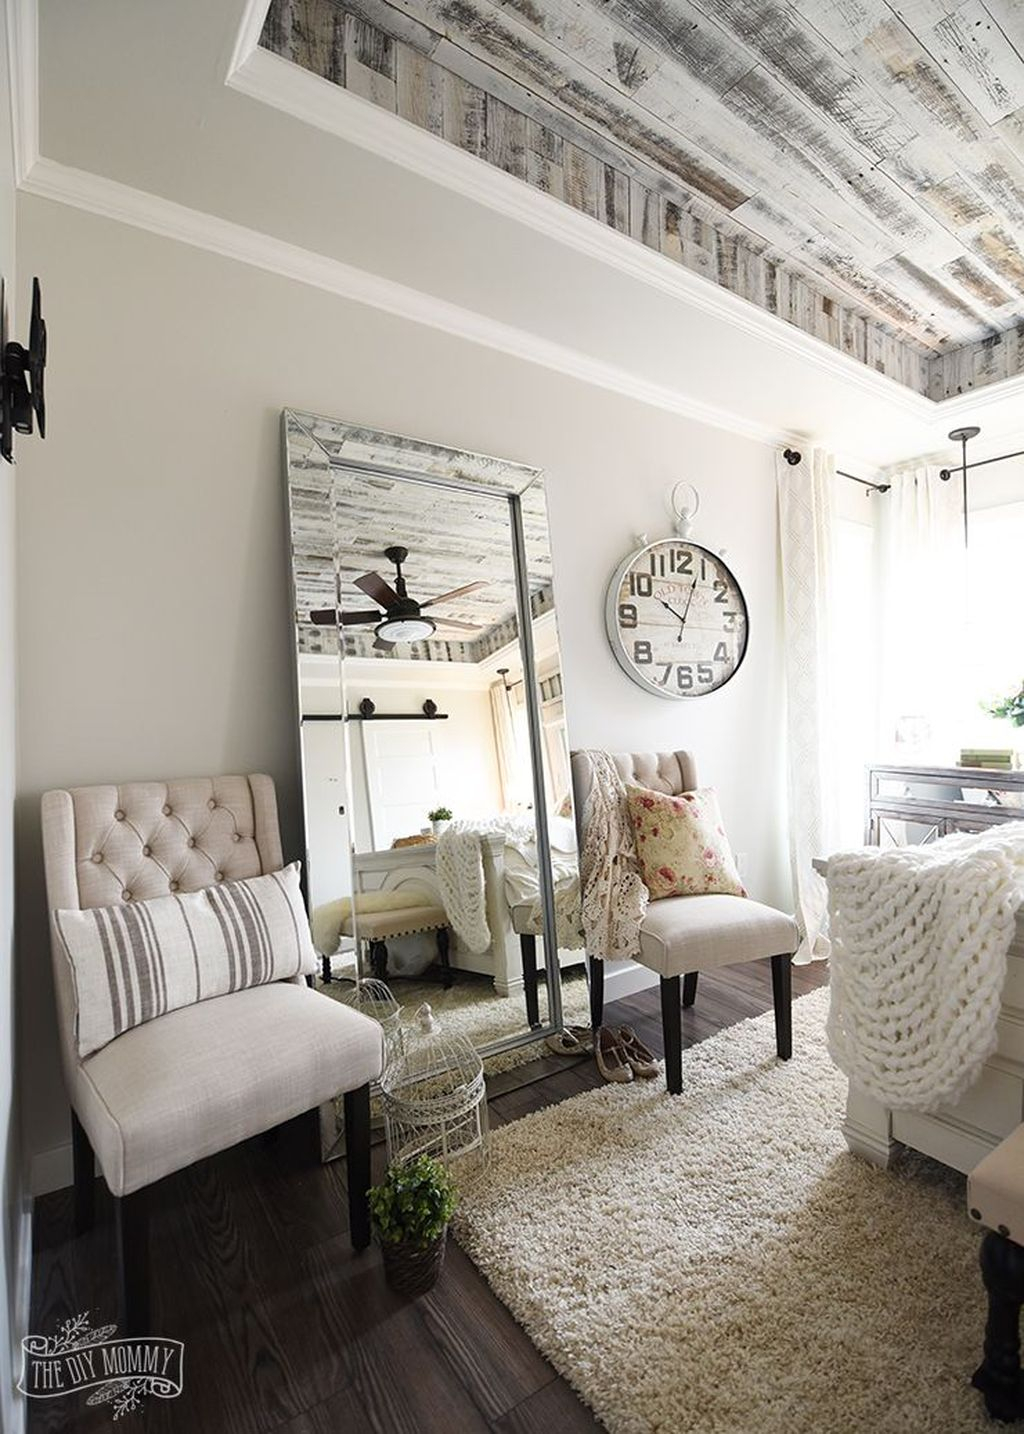 Cool French Country Master Bedroom Design Ideas With Farmhouse Style 23